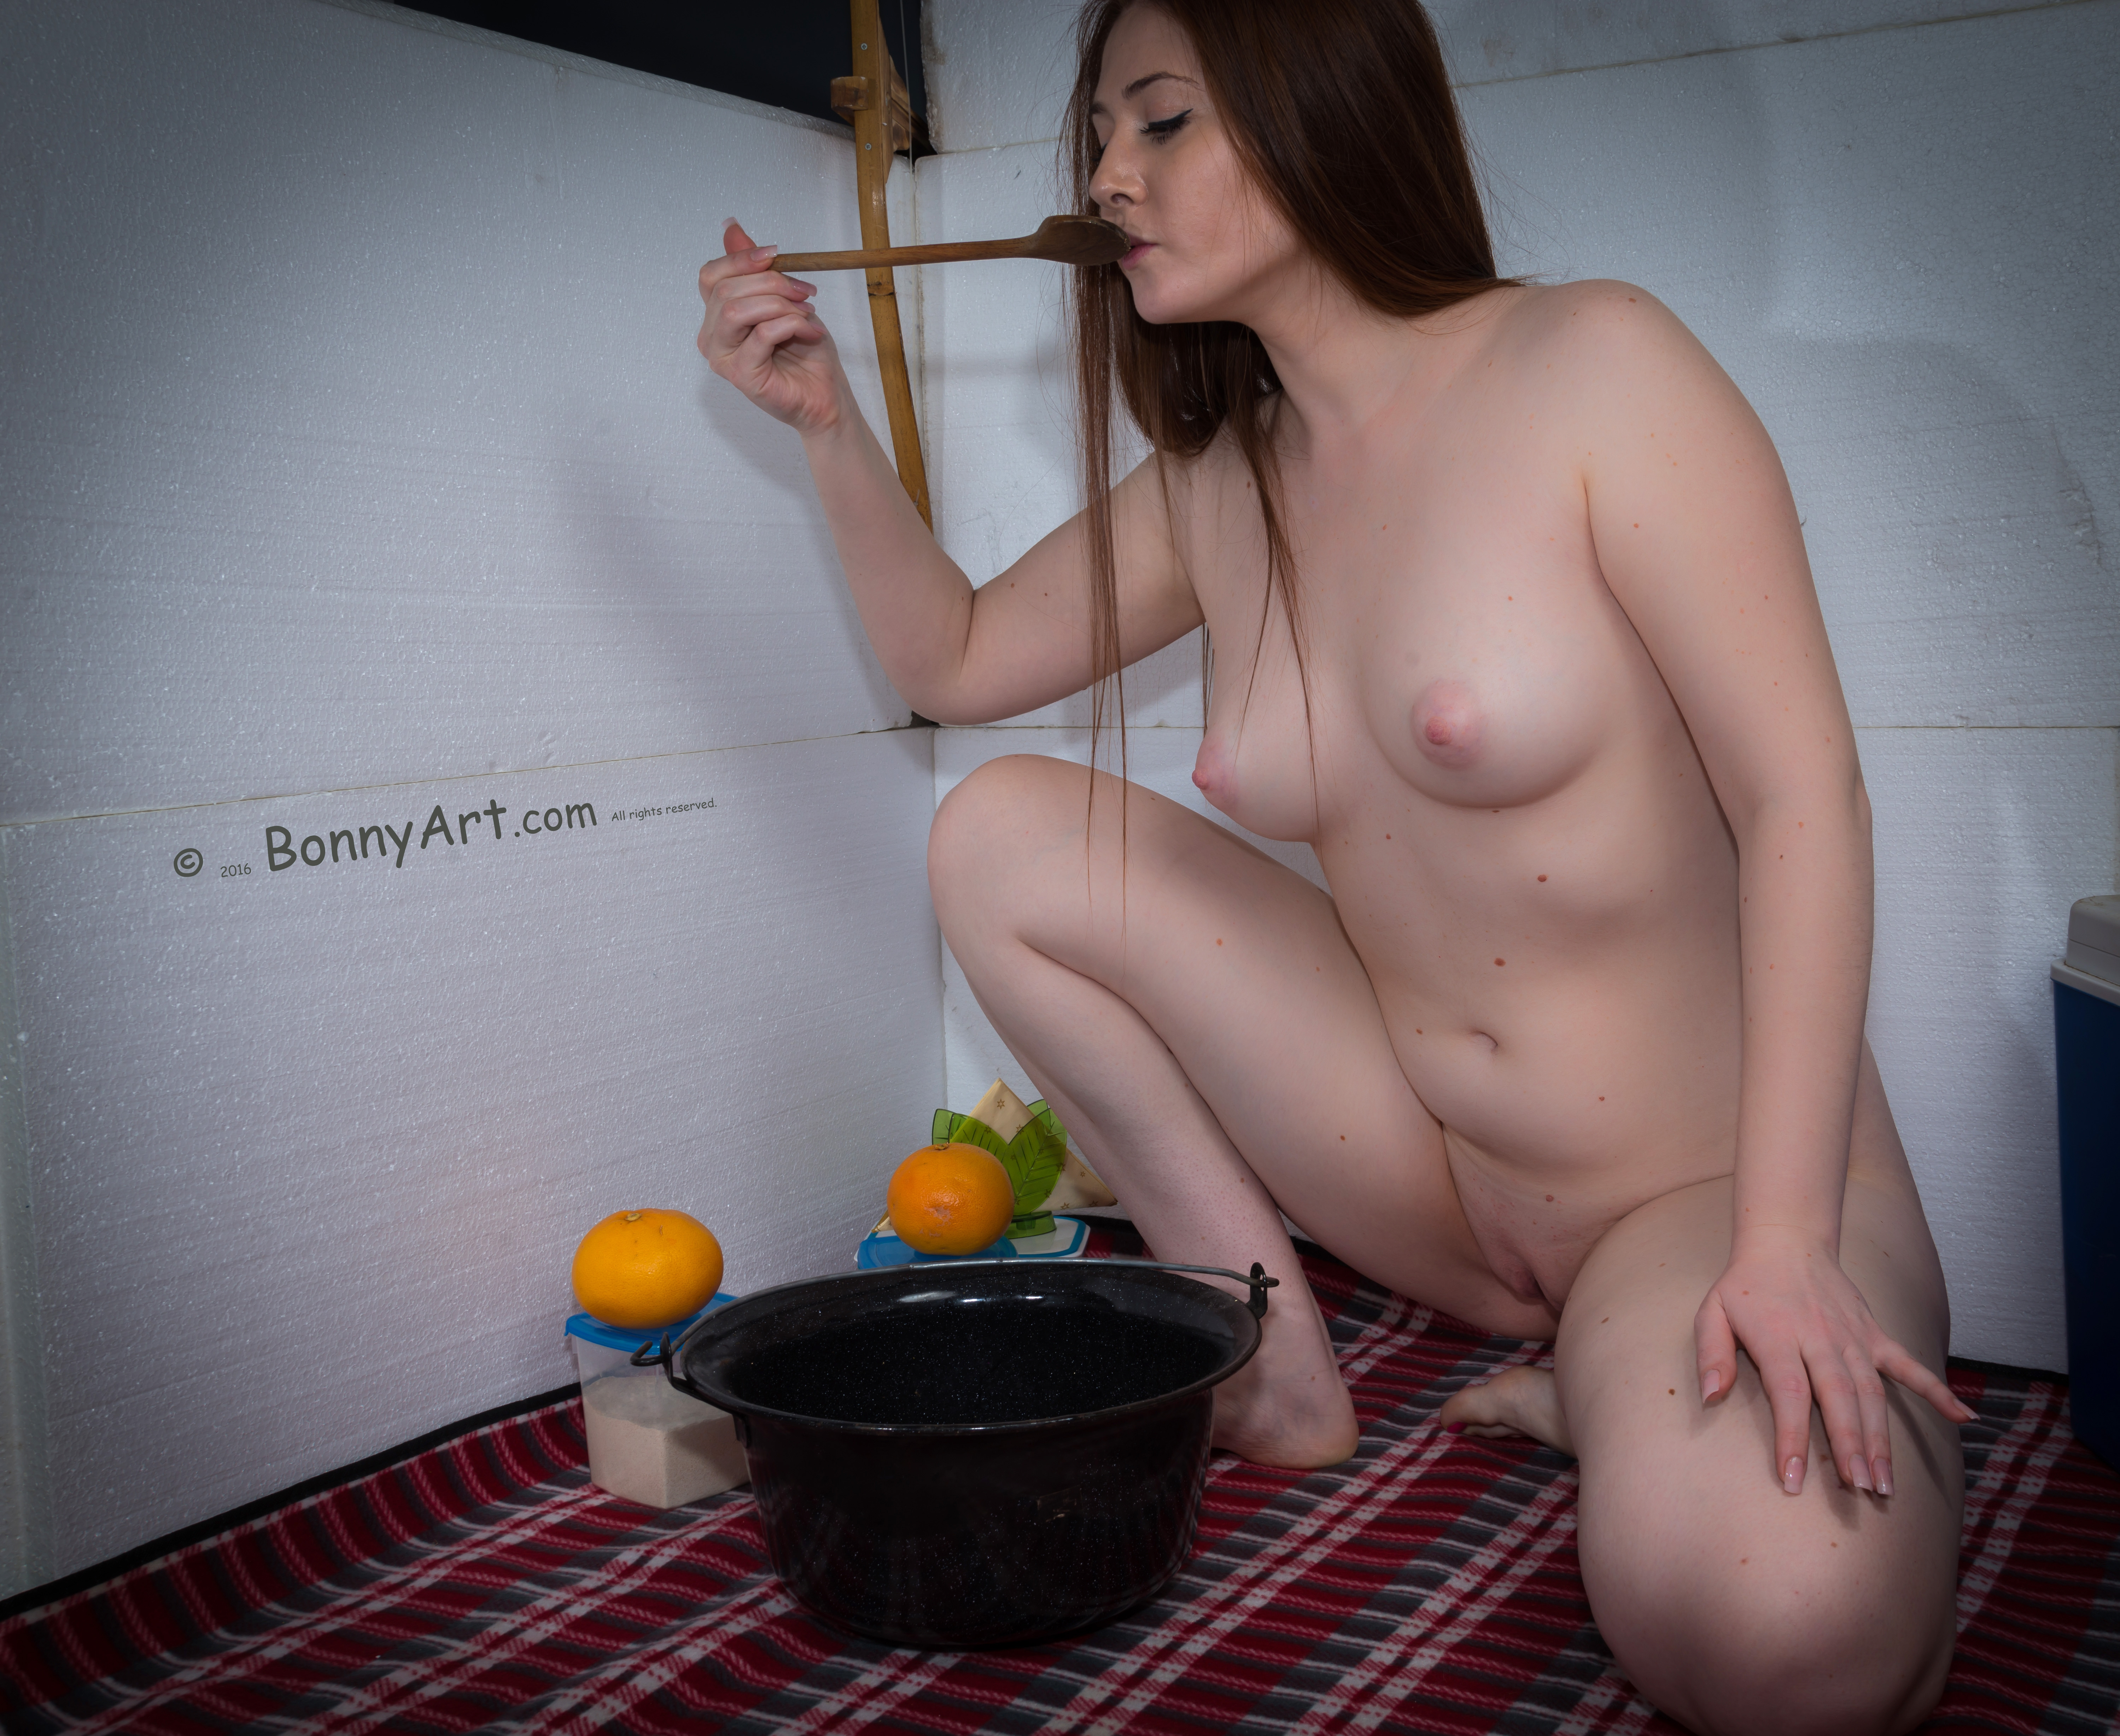 Naked Homeless Woman Tasting her Supper HD